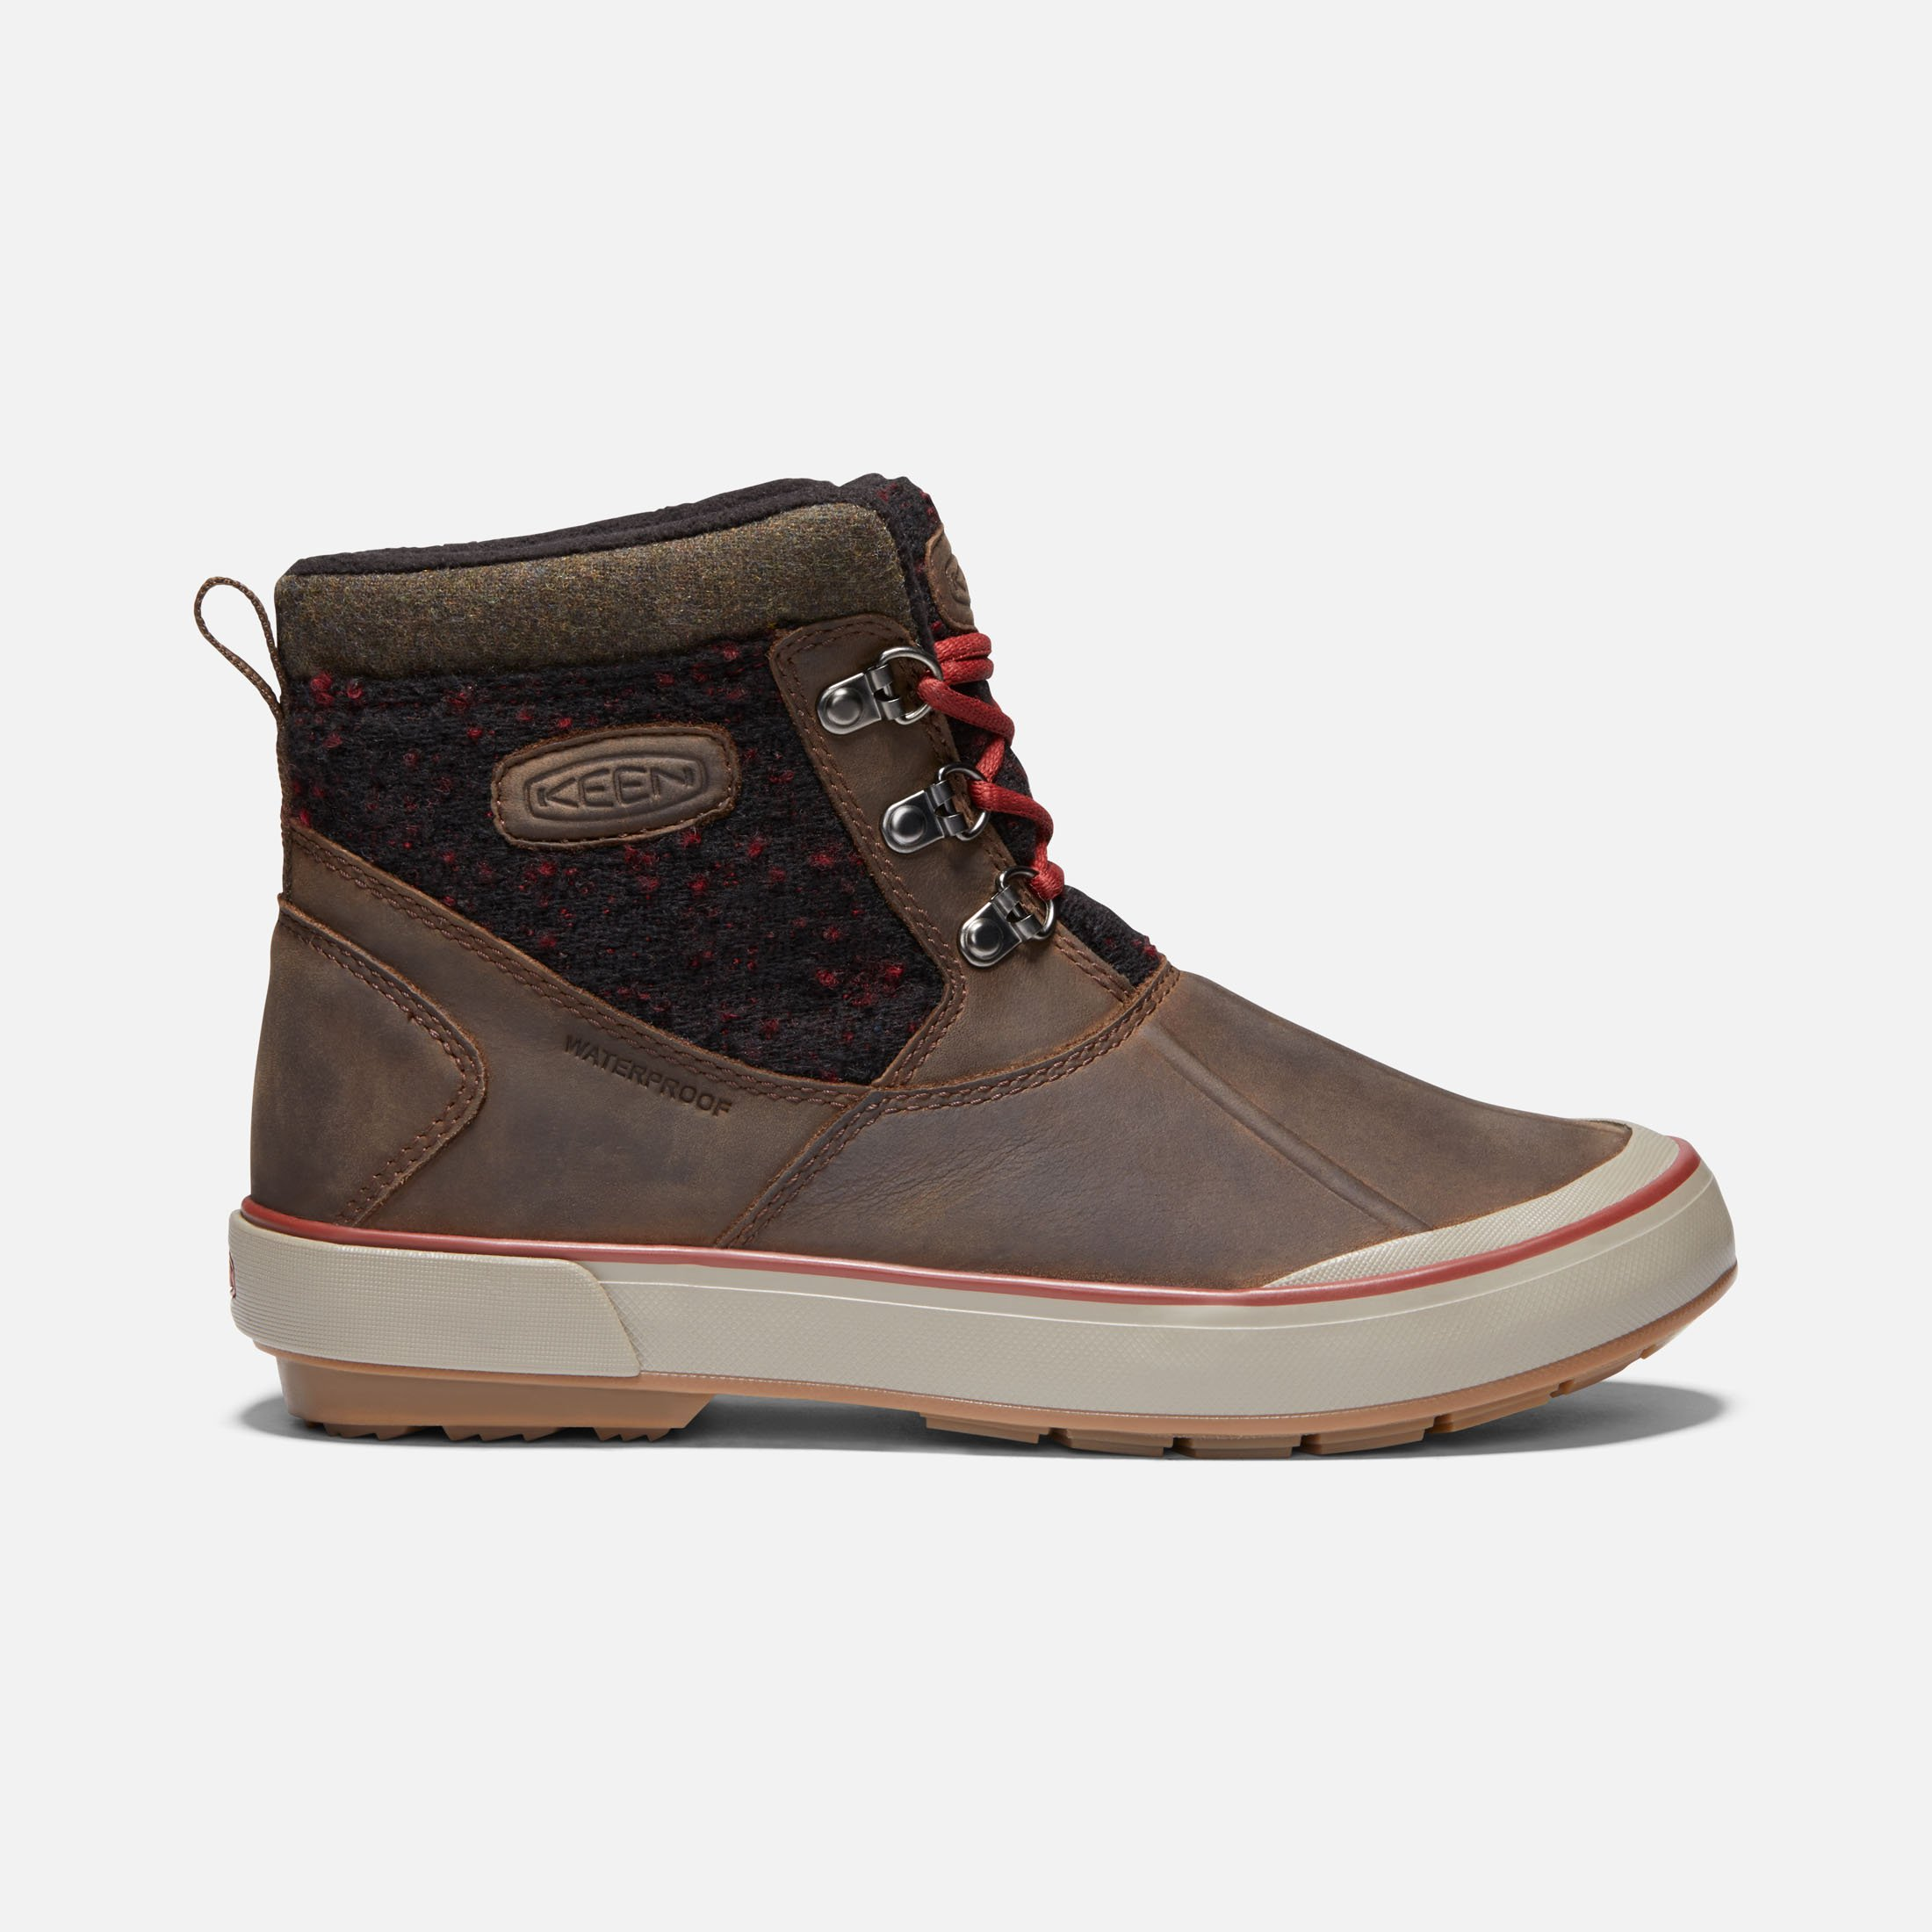 Elsa II ankle boots are cozy and warm